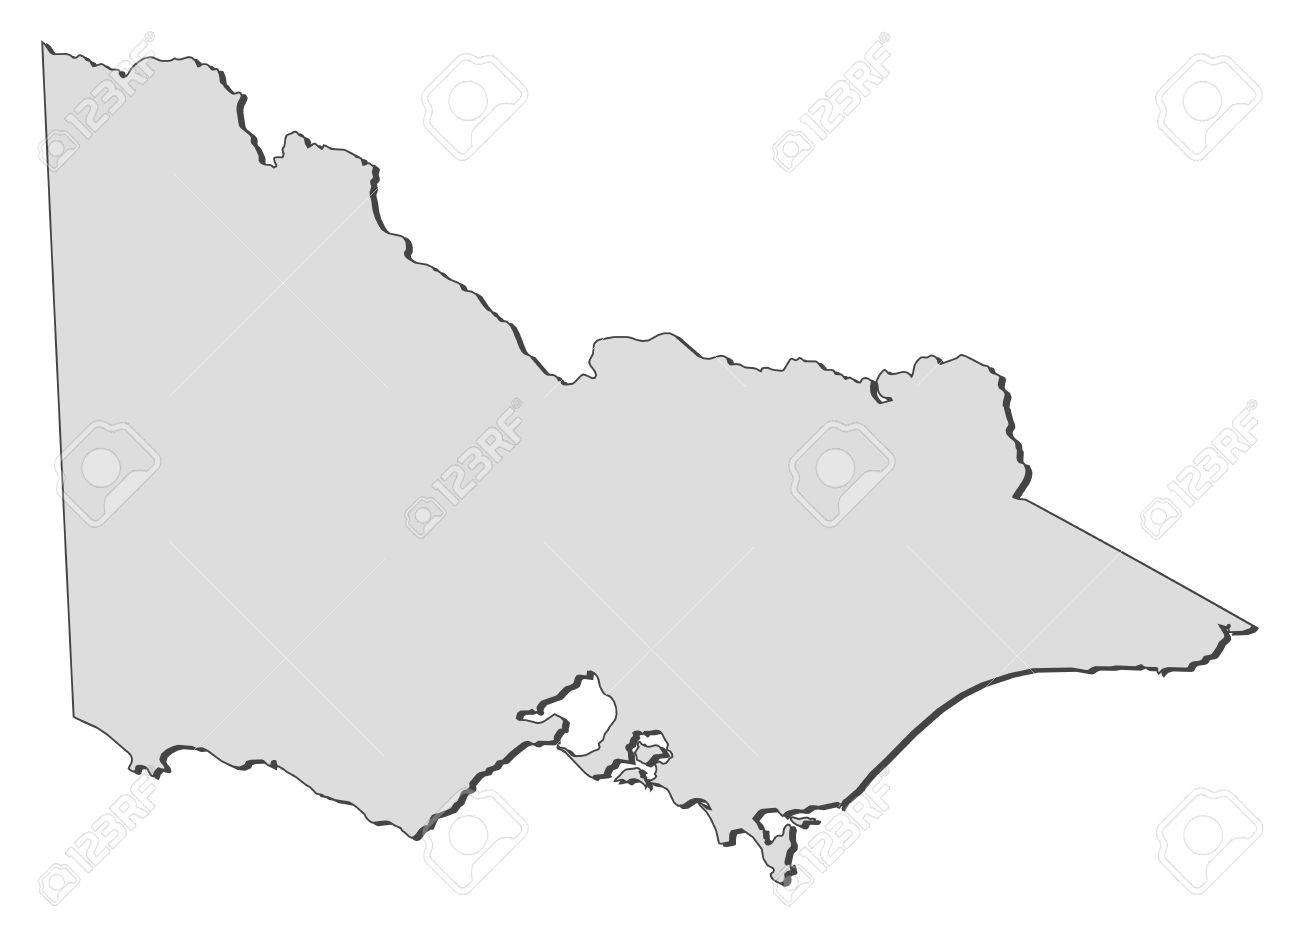 Victoria State Australia Map.Map Of Victoria A State Of Australia Royalty Free Cliparts